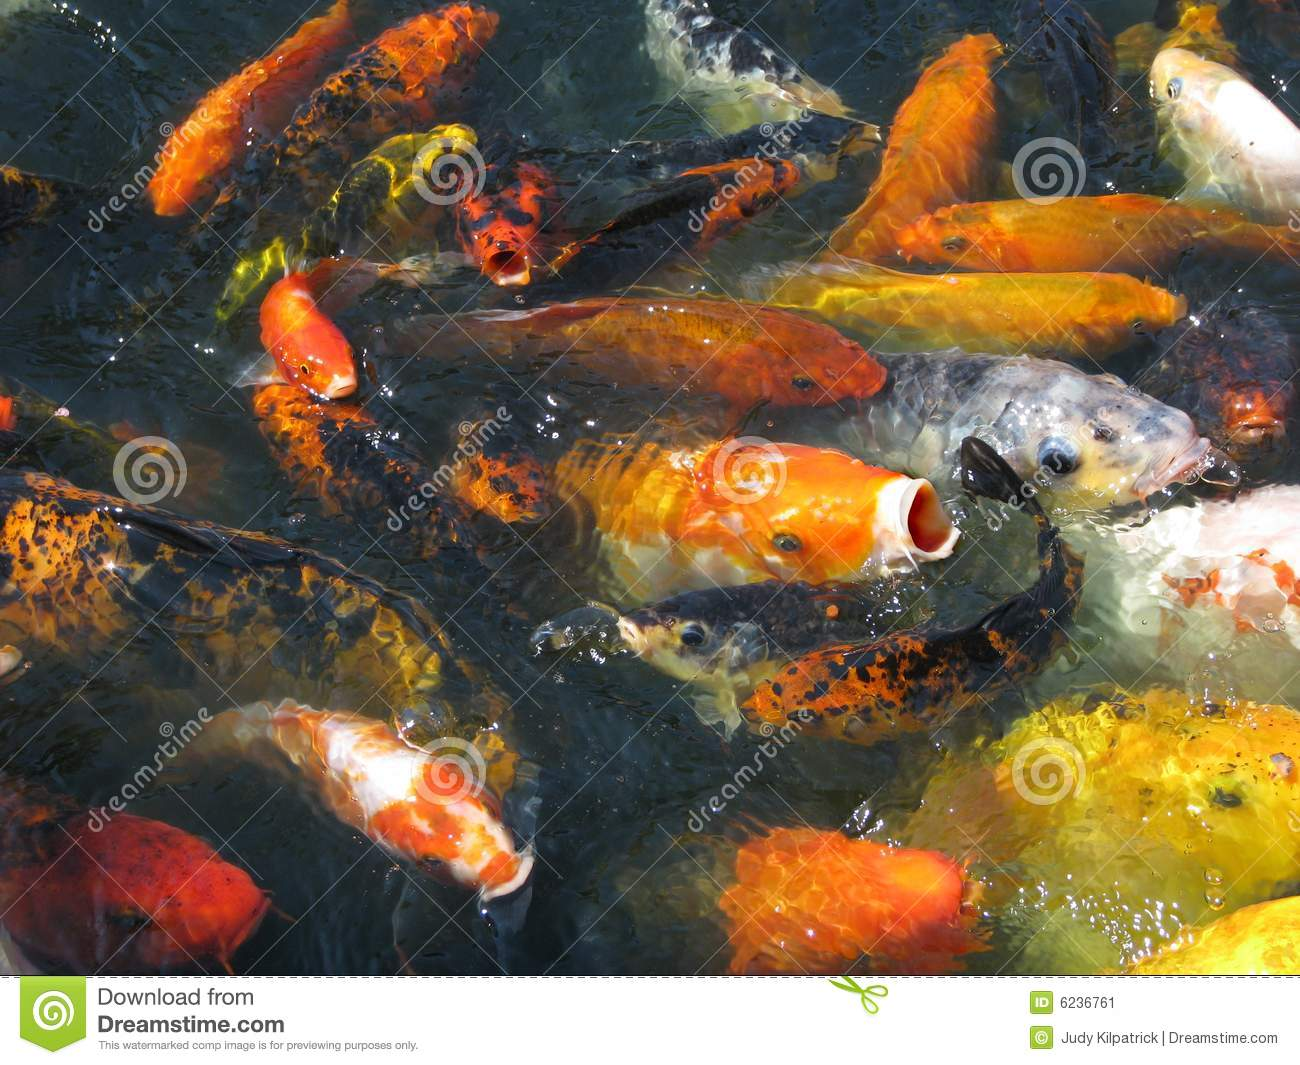 Japanese koi in feeding frenzy stock image image 6236761 for Koi feeding